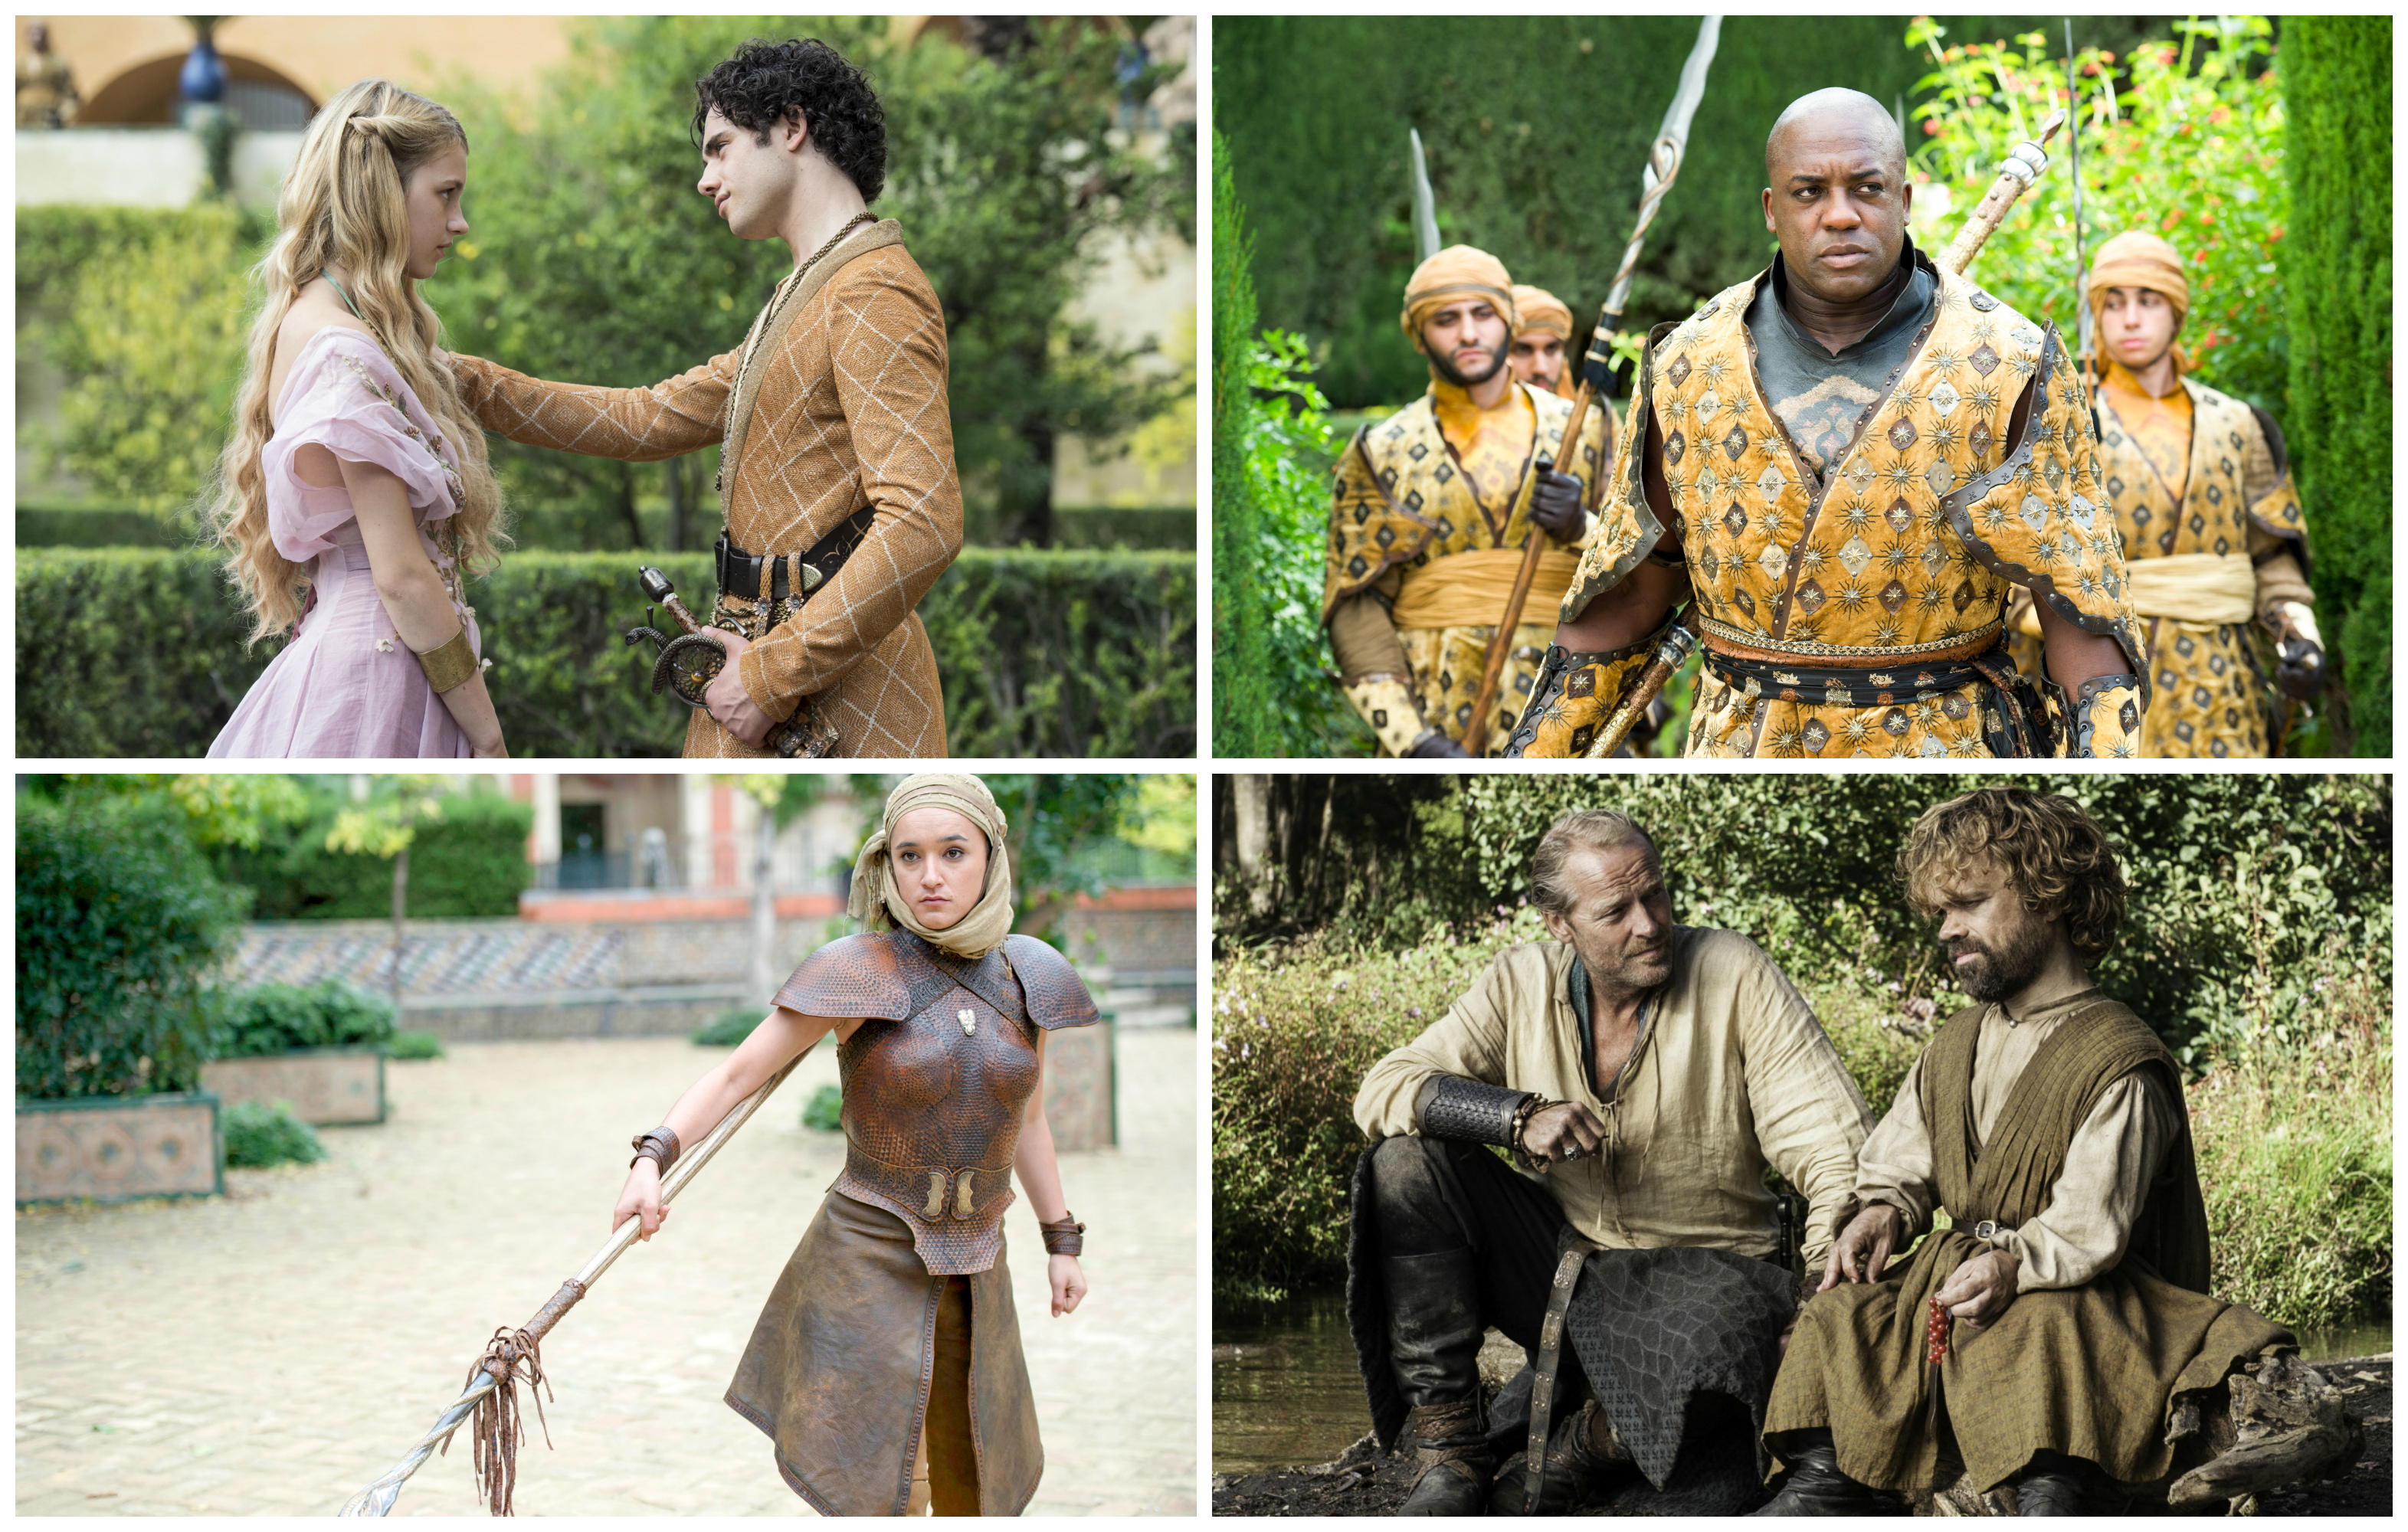 Episode 219: Game of Thrones - S5E6 - Unbowed, Unbent, Unbroken